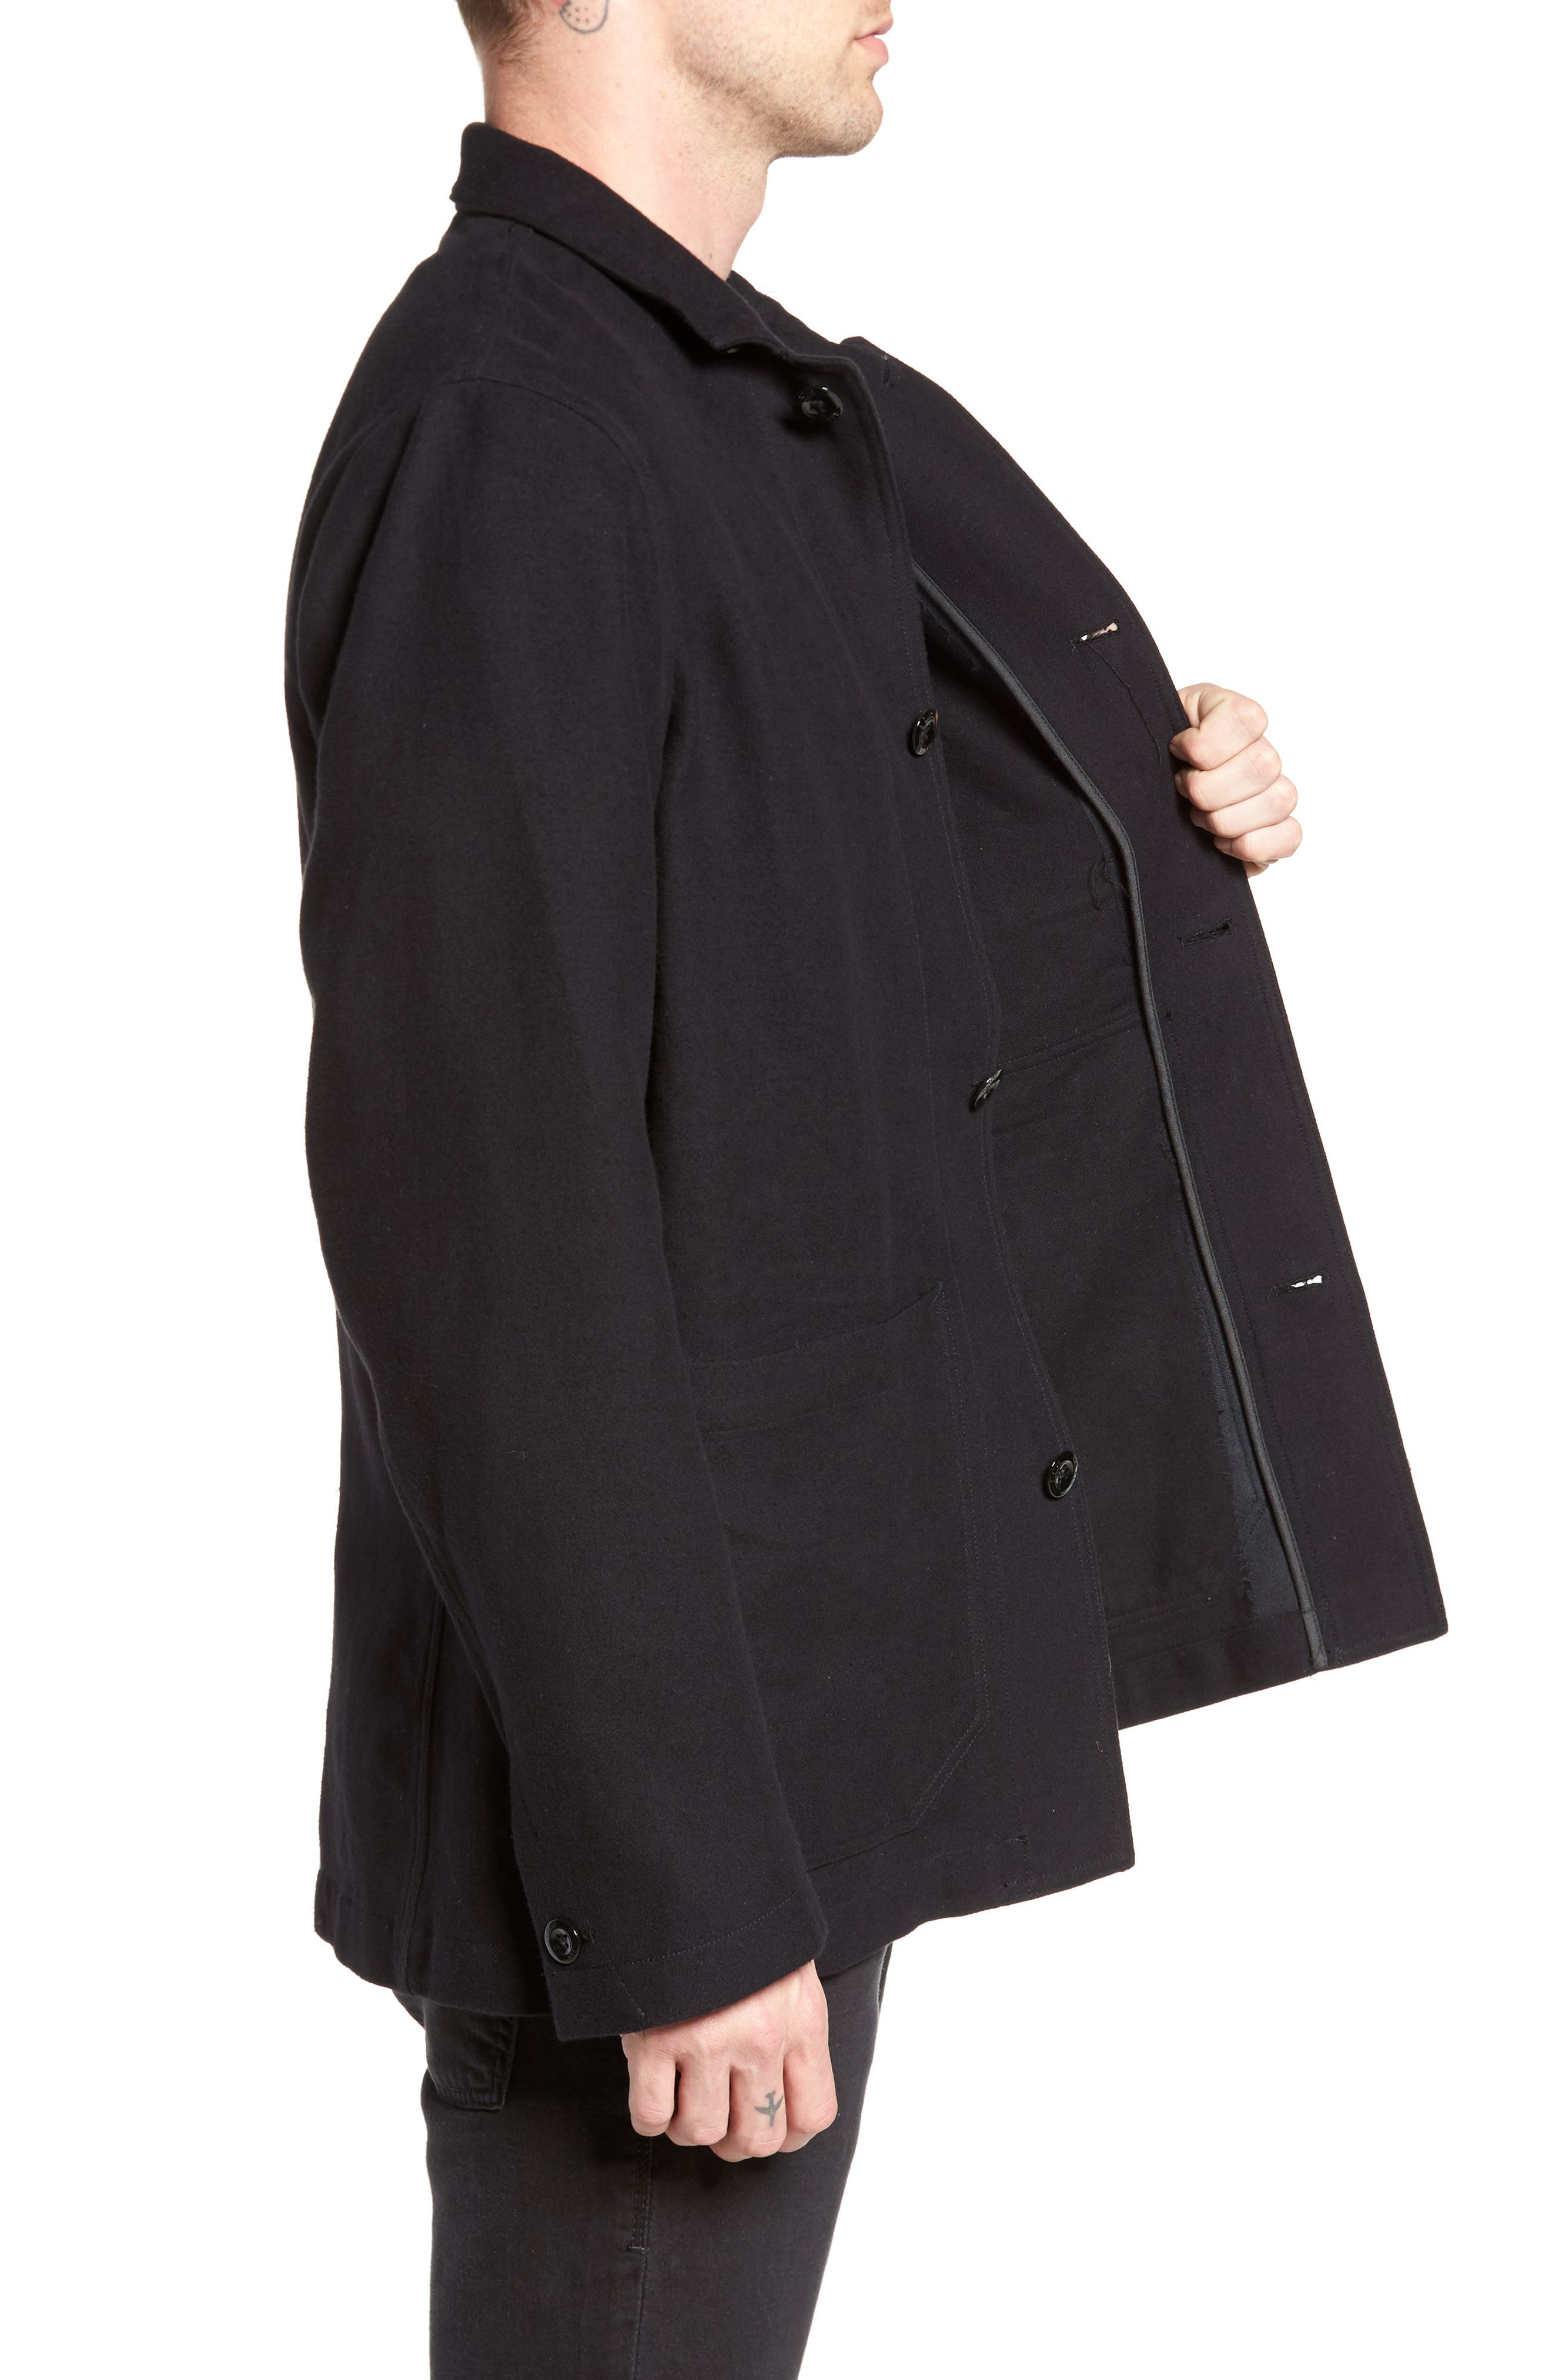 Bronson Worker Blazer,                             Alternate thumbnail 3, color,                             Black